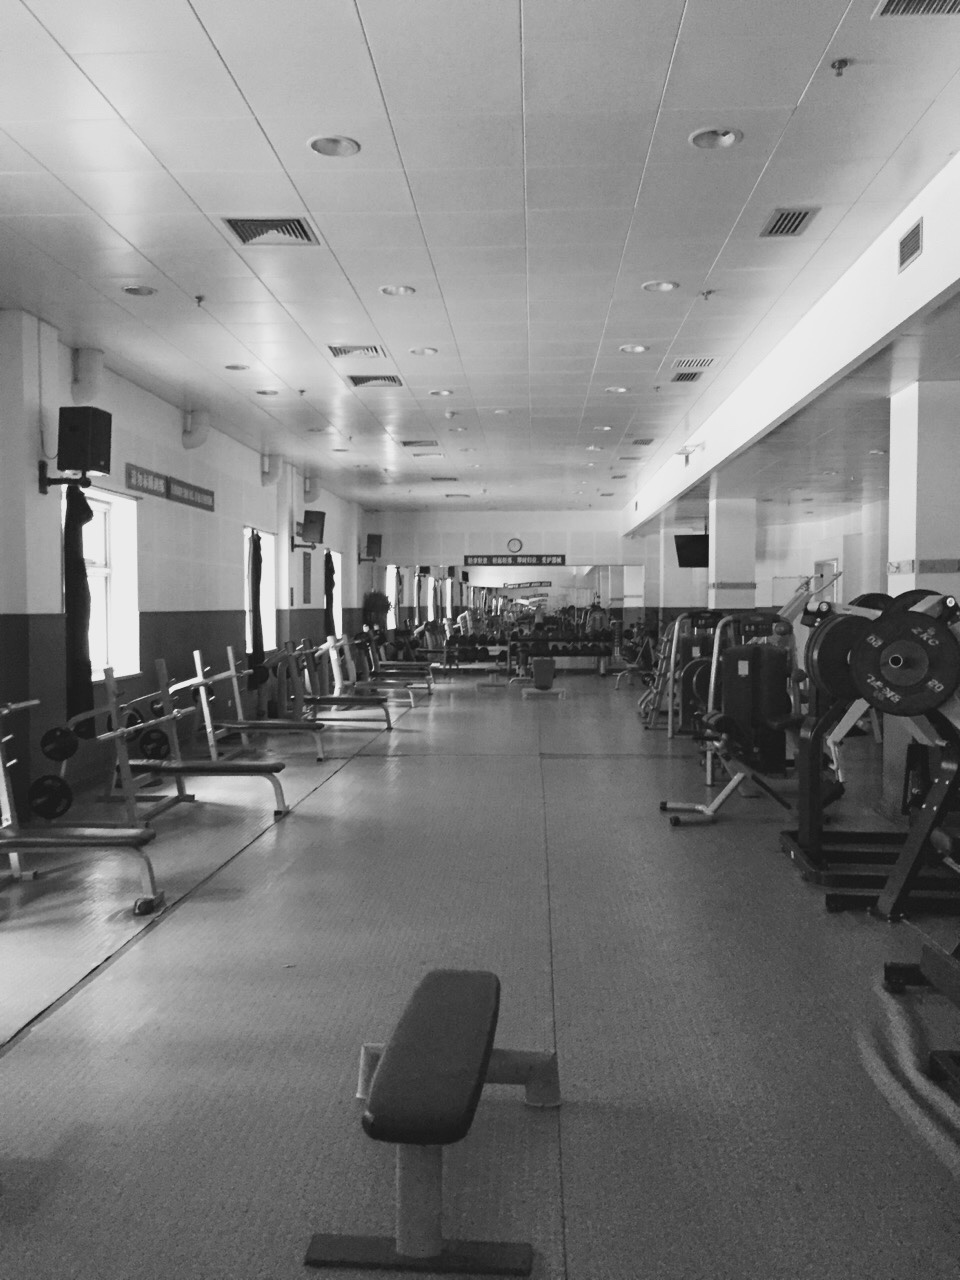 Guy tells me gym is closed. I nod my head, sneak into the closed door, and enjoyed a workout in absolute silence